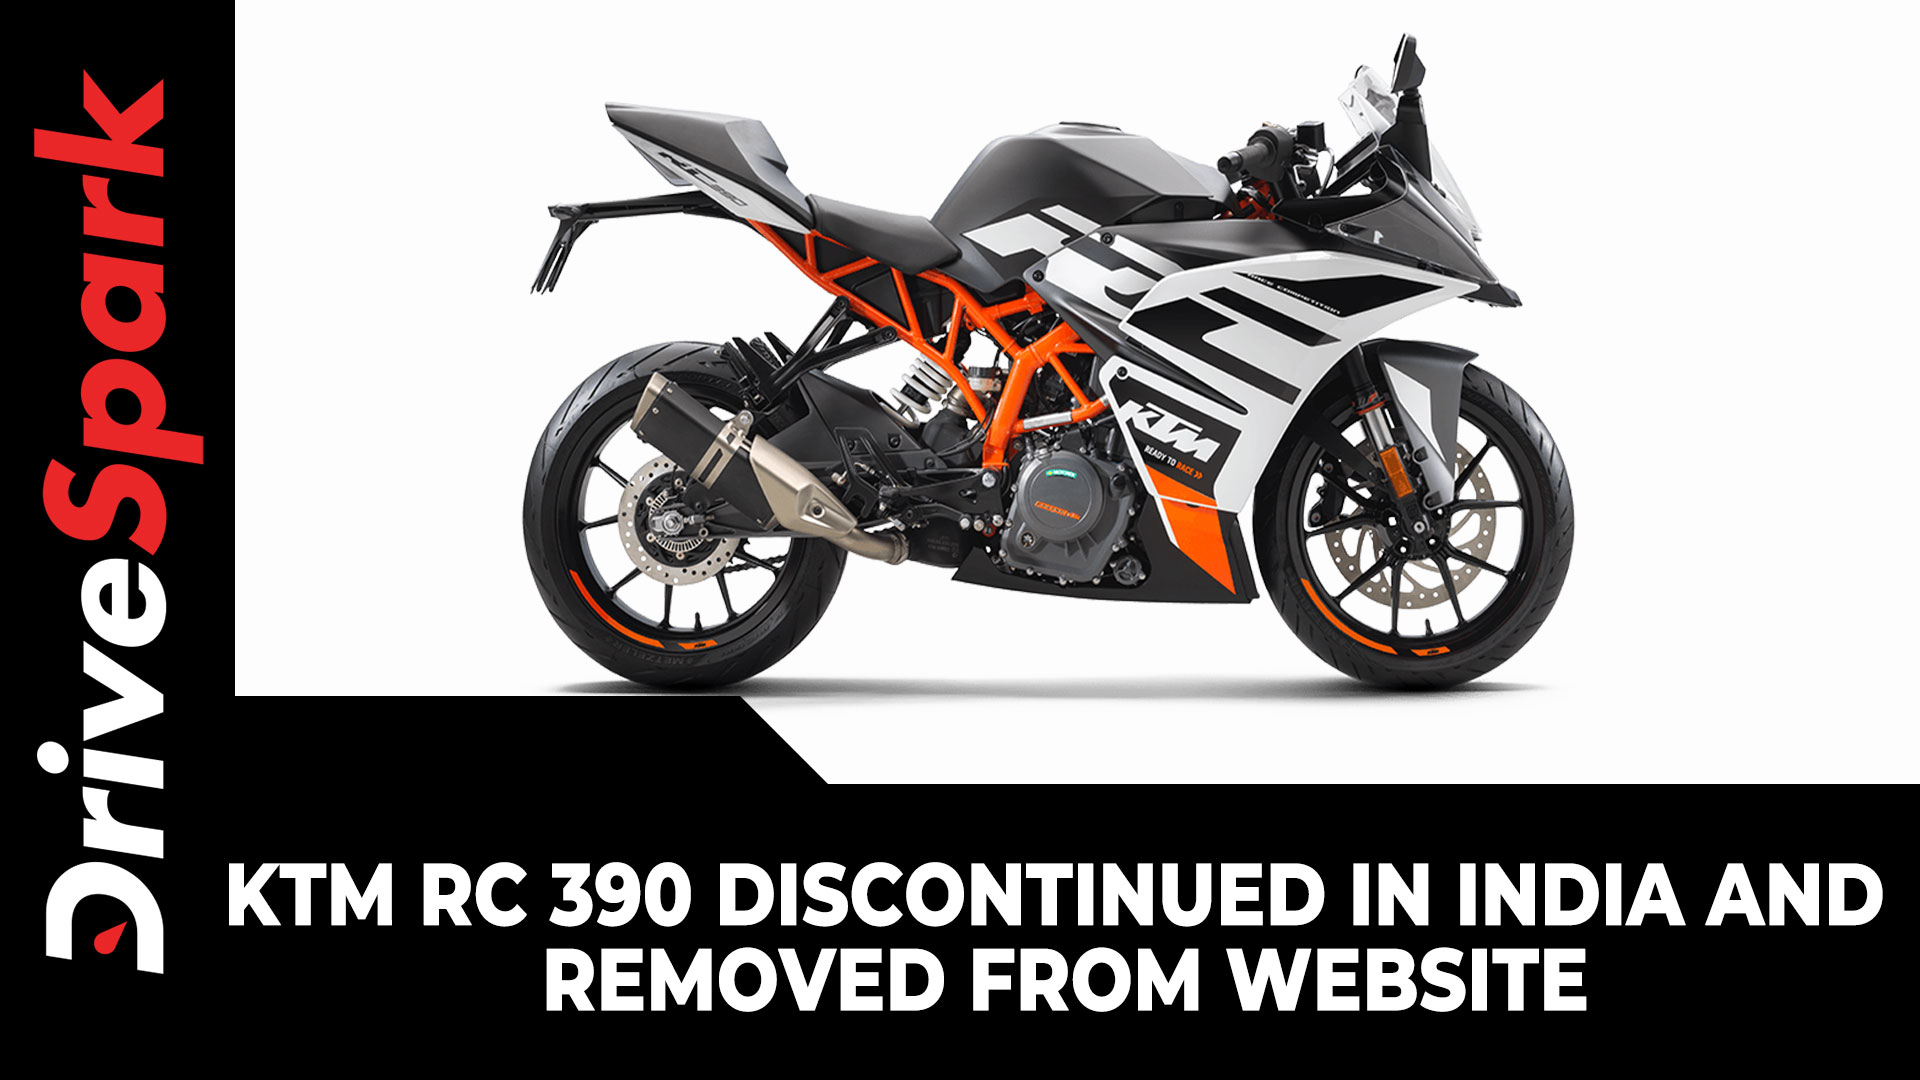 KTM RC 390 Discontinued In India & Removed From Website